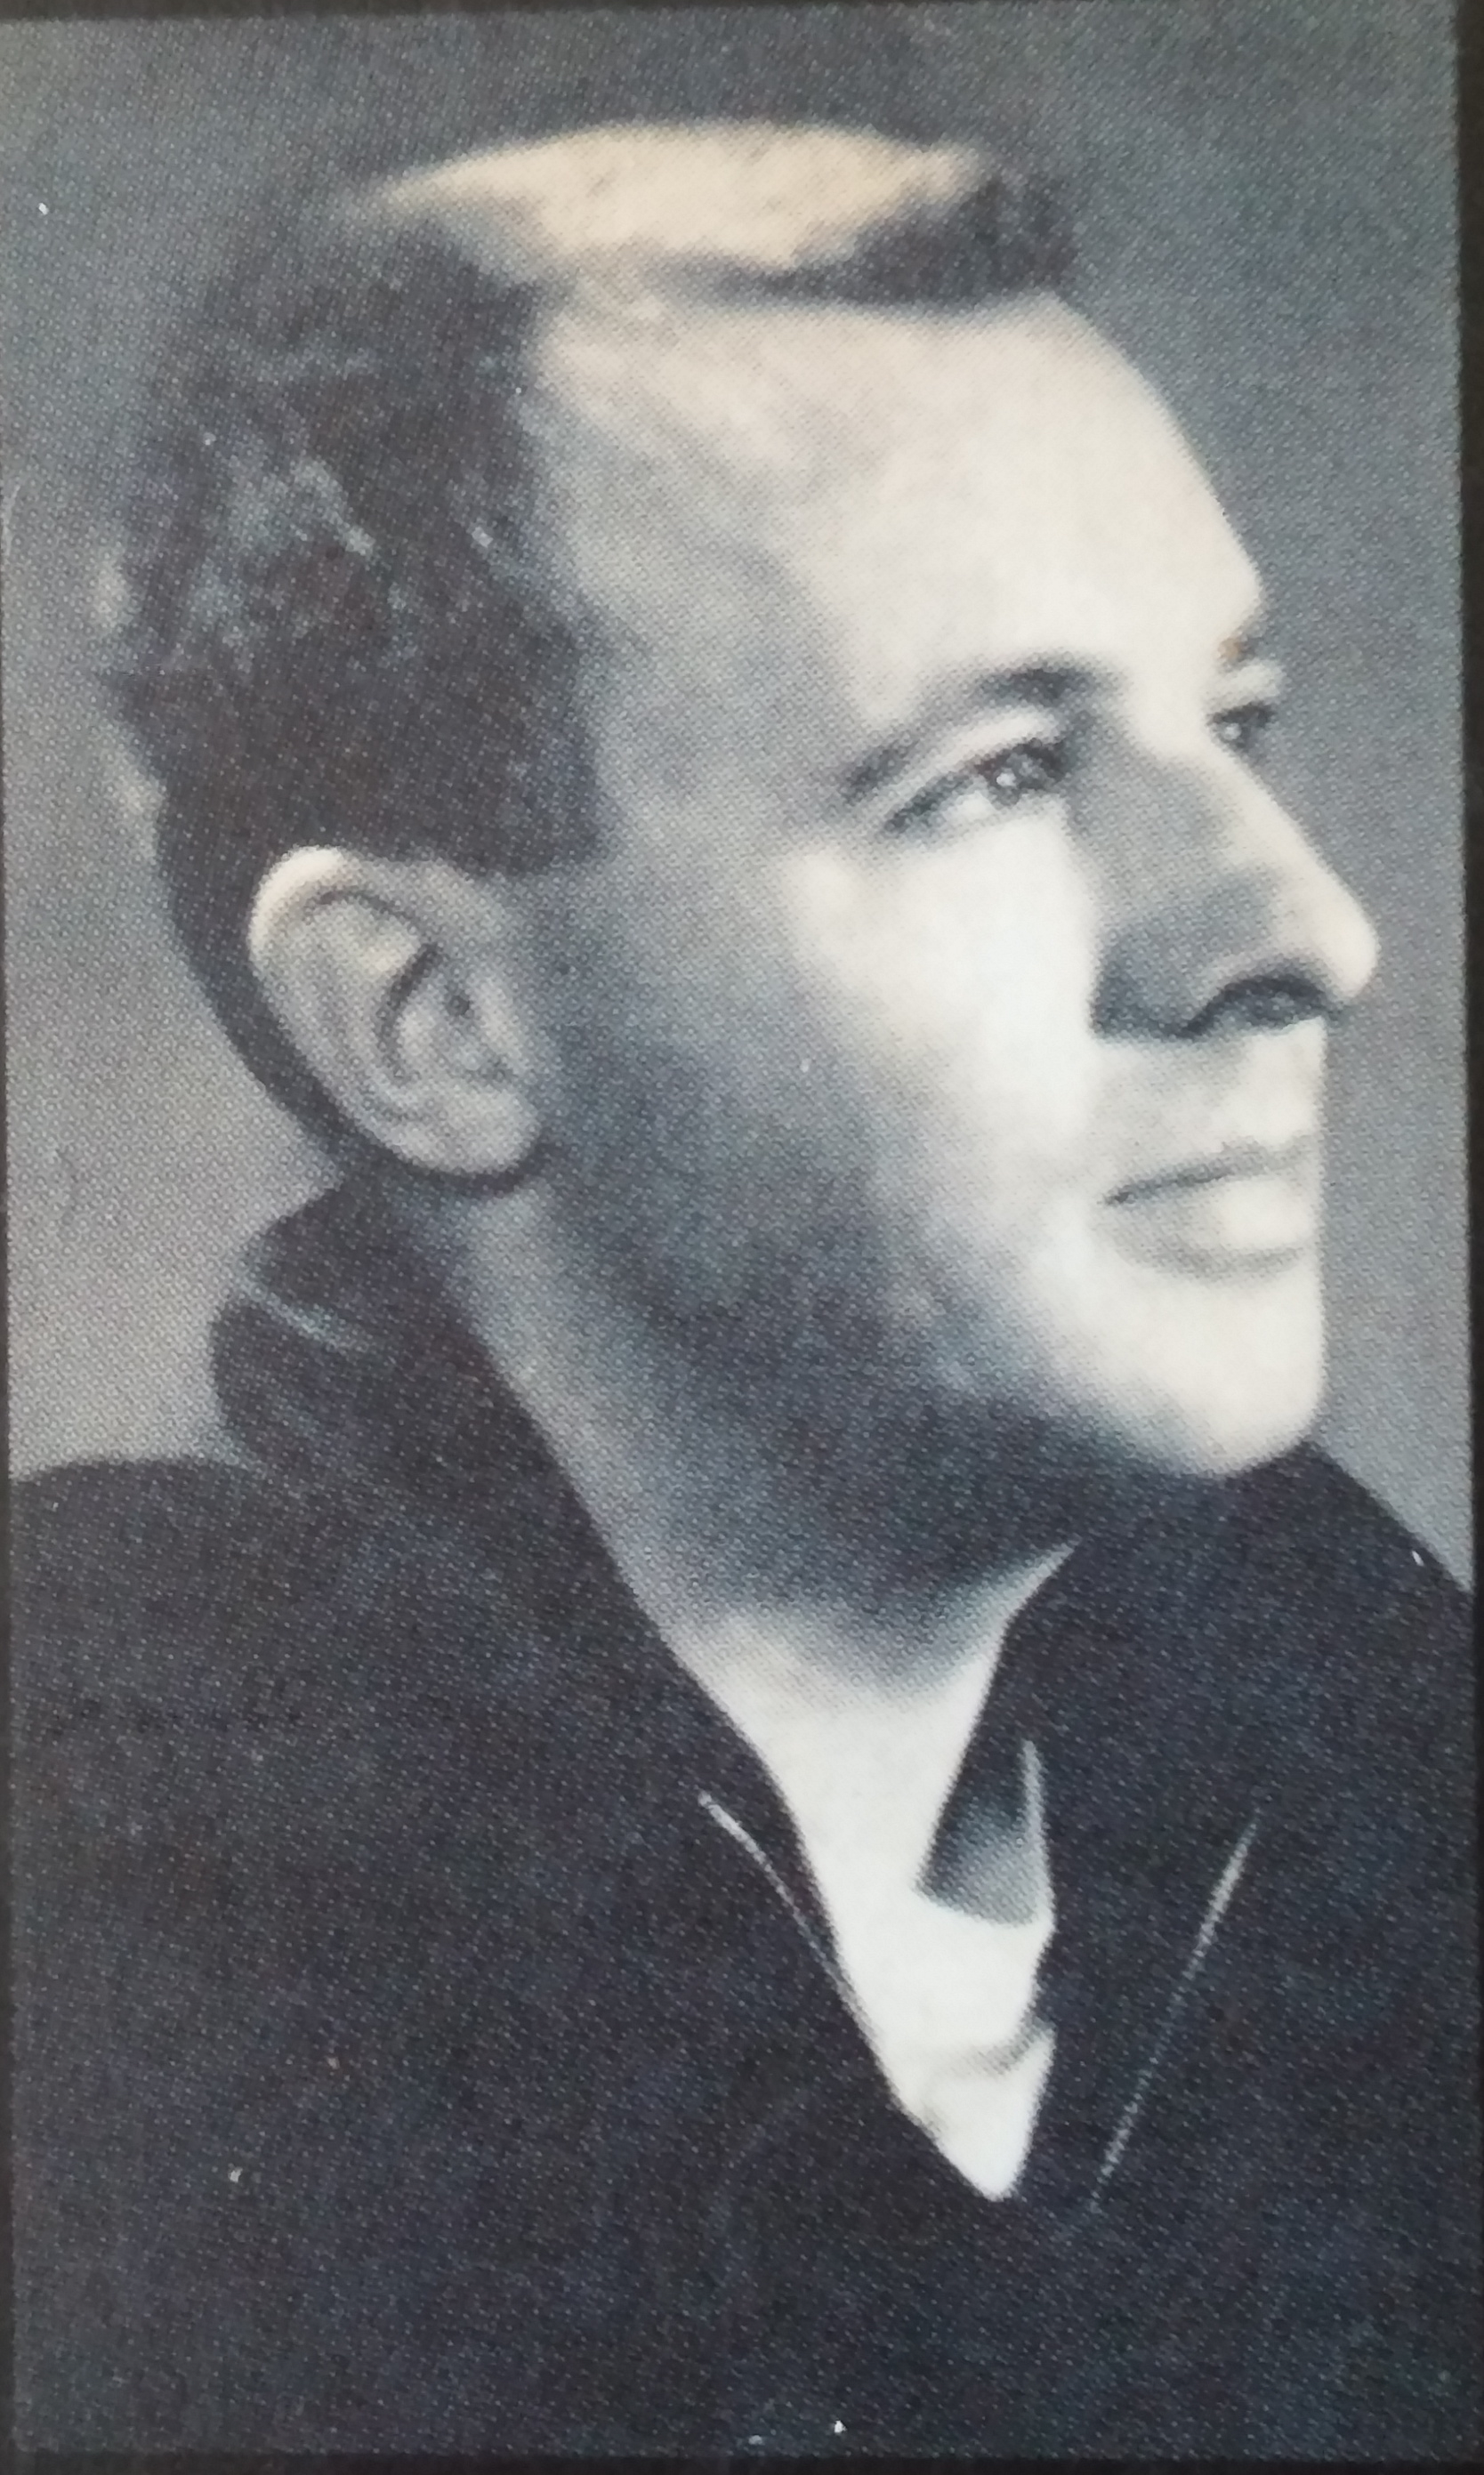 ray bradbury buckeyemuse ray bradbury in the 1950s